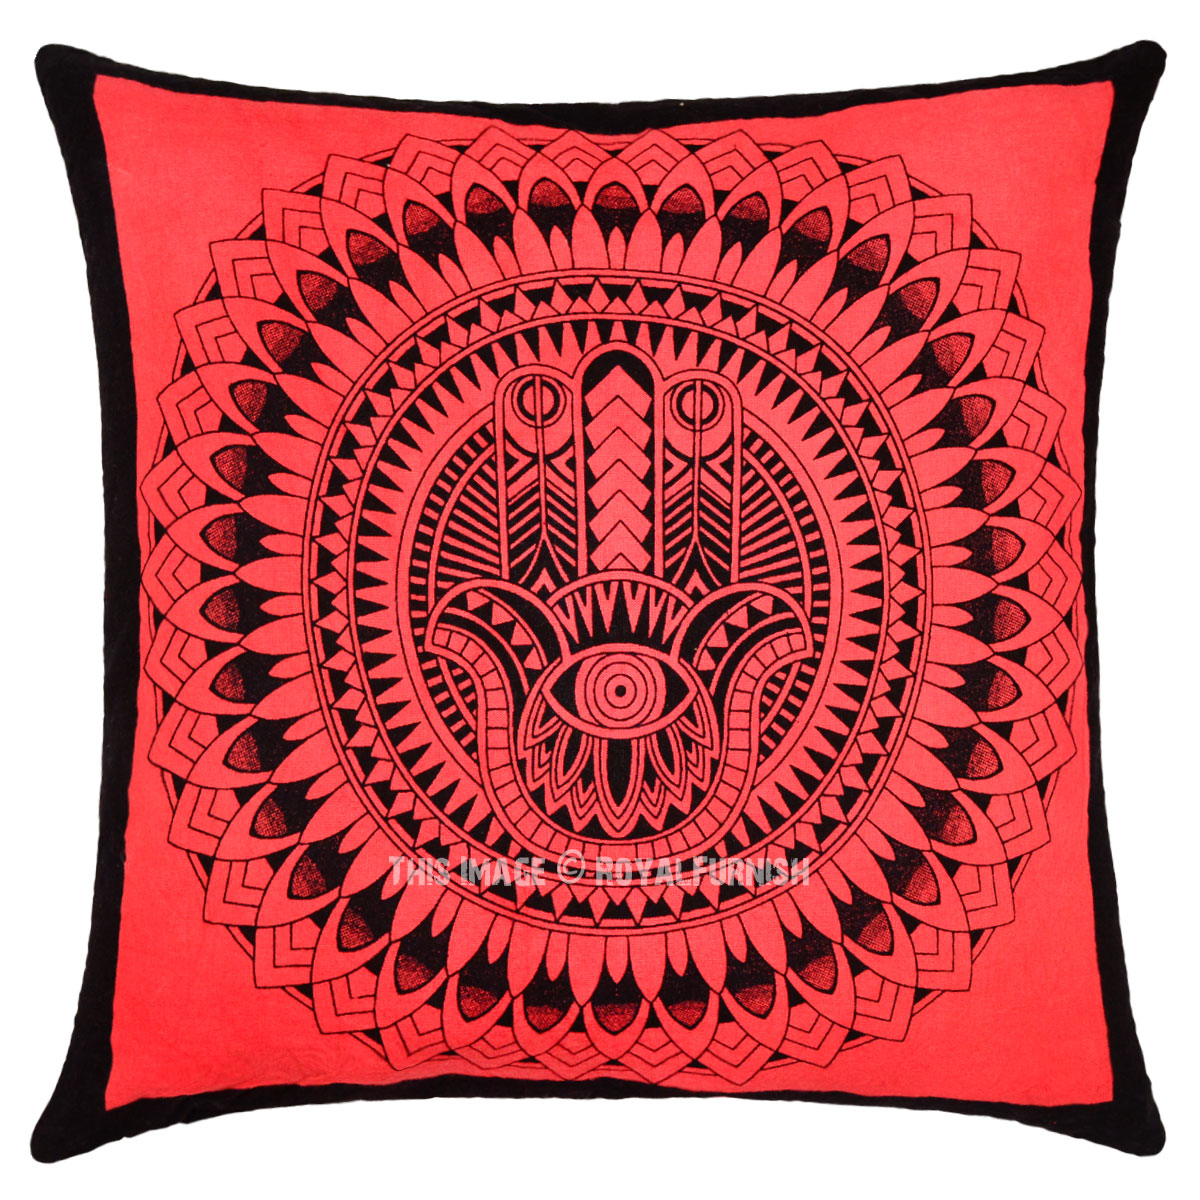 Throw Pillow Cover Only : Red Decorative Hamsa Hand Printed Tie Dye Square Throw Pillow Cover 16X16 - RoyalFurnish.com